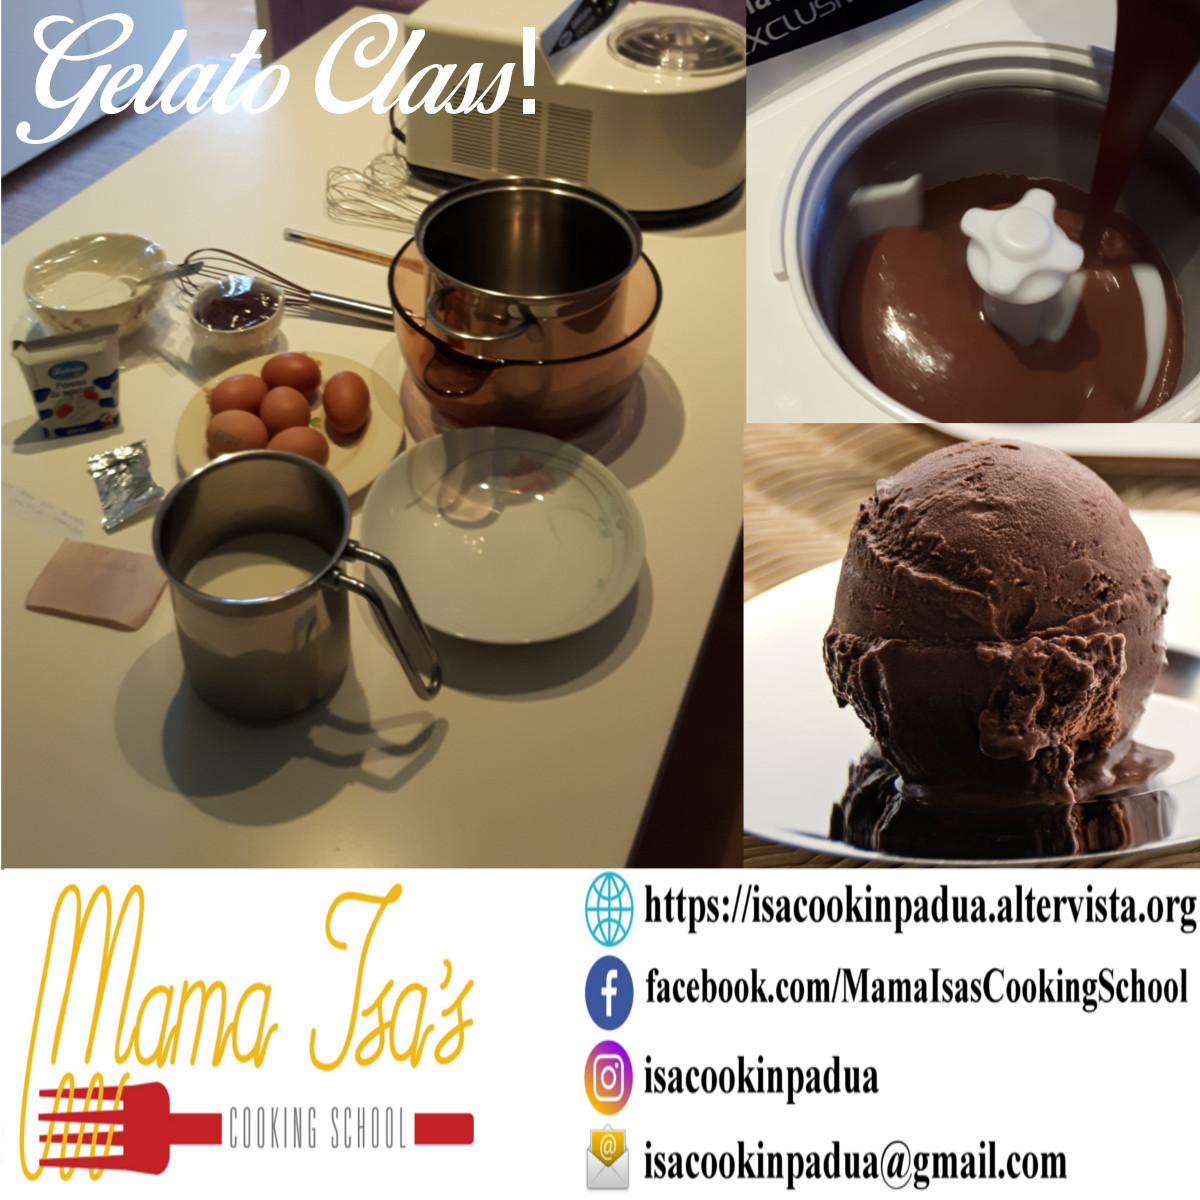 Artisanal Gelato Class in Italy near Venice with Mama Isa